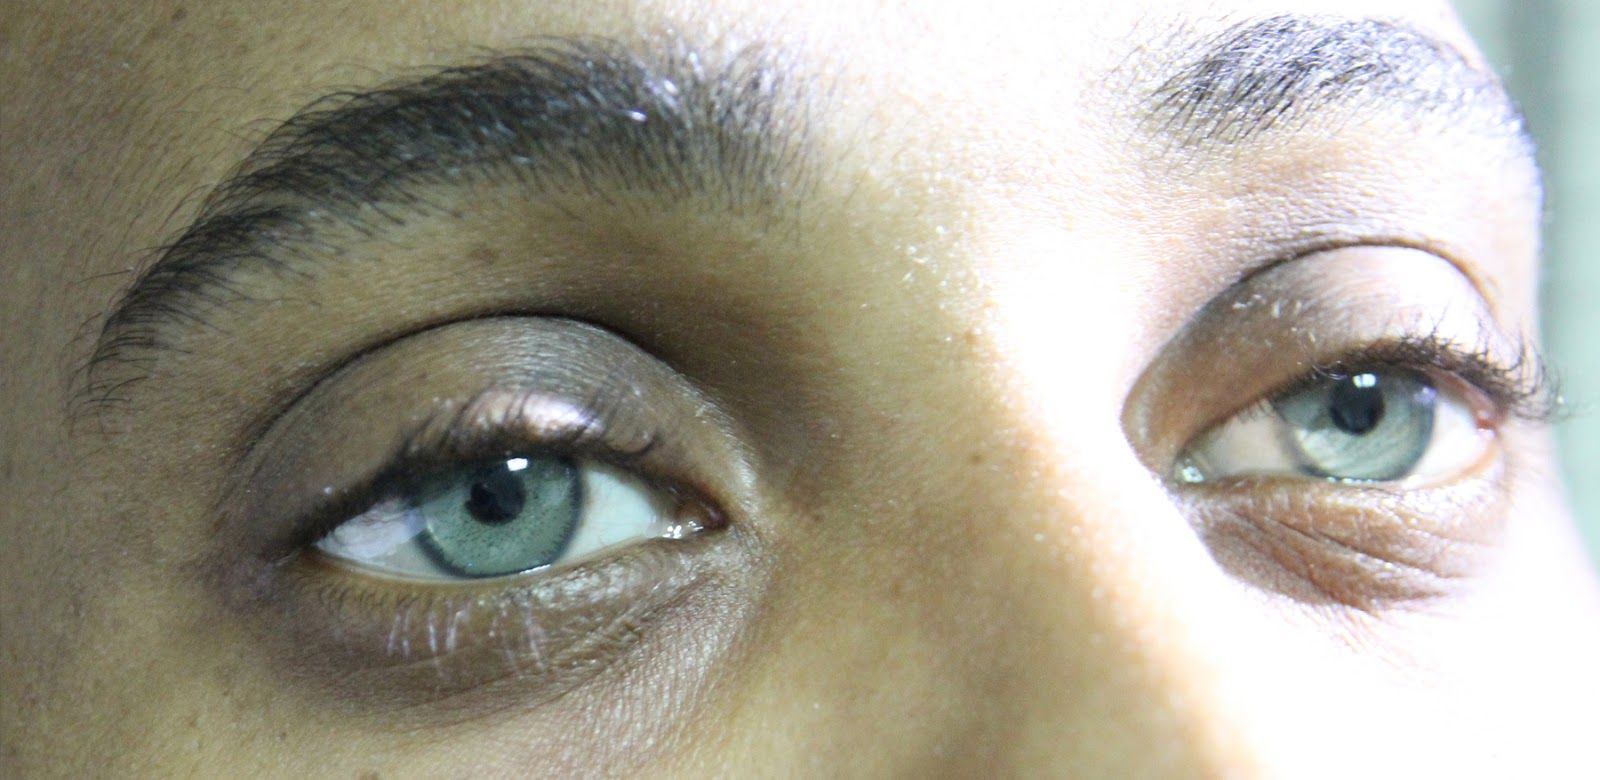 Laser Surgery to Change Eye Color  #coloredeyecontacts